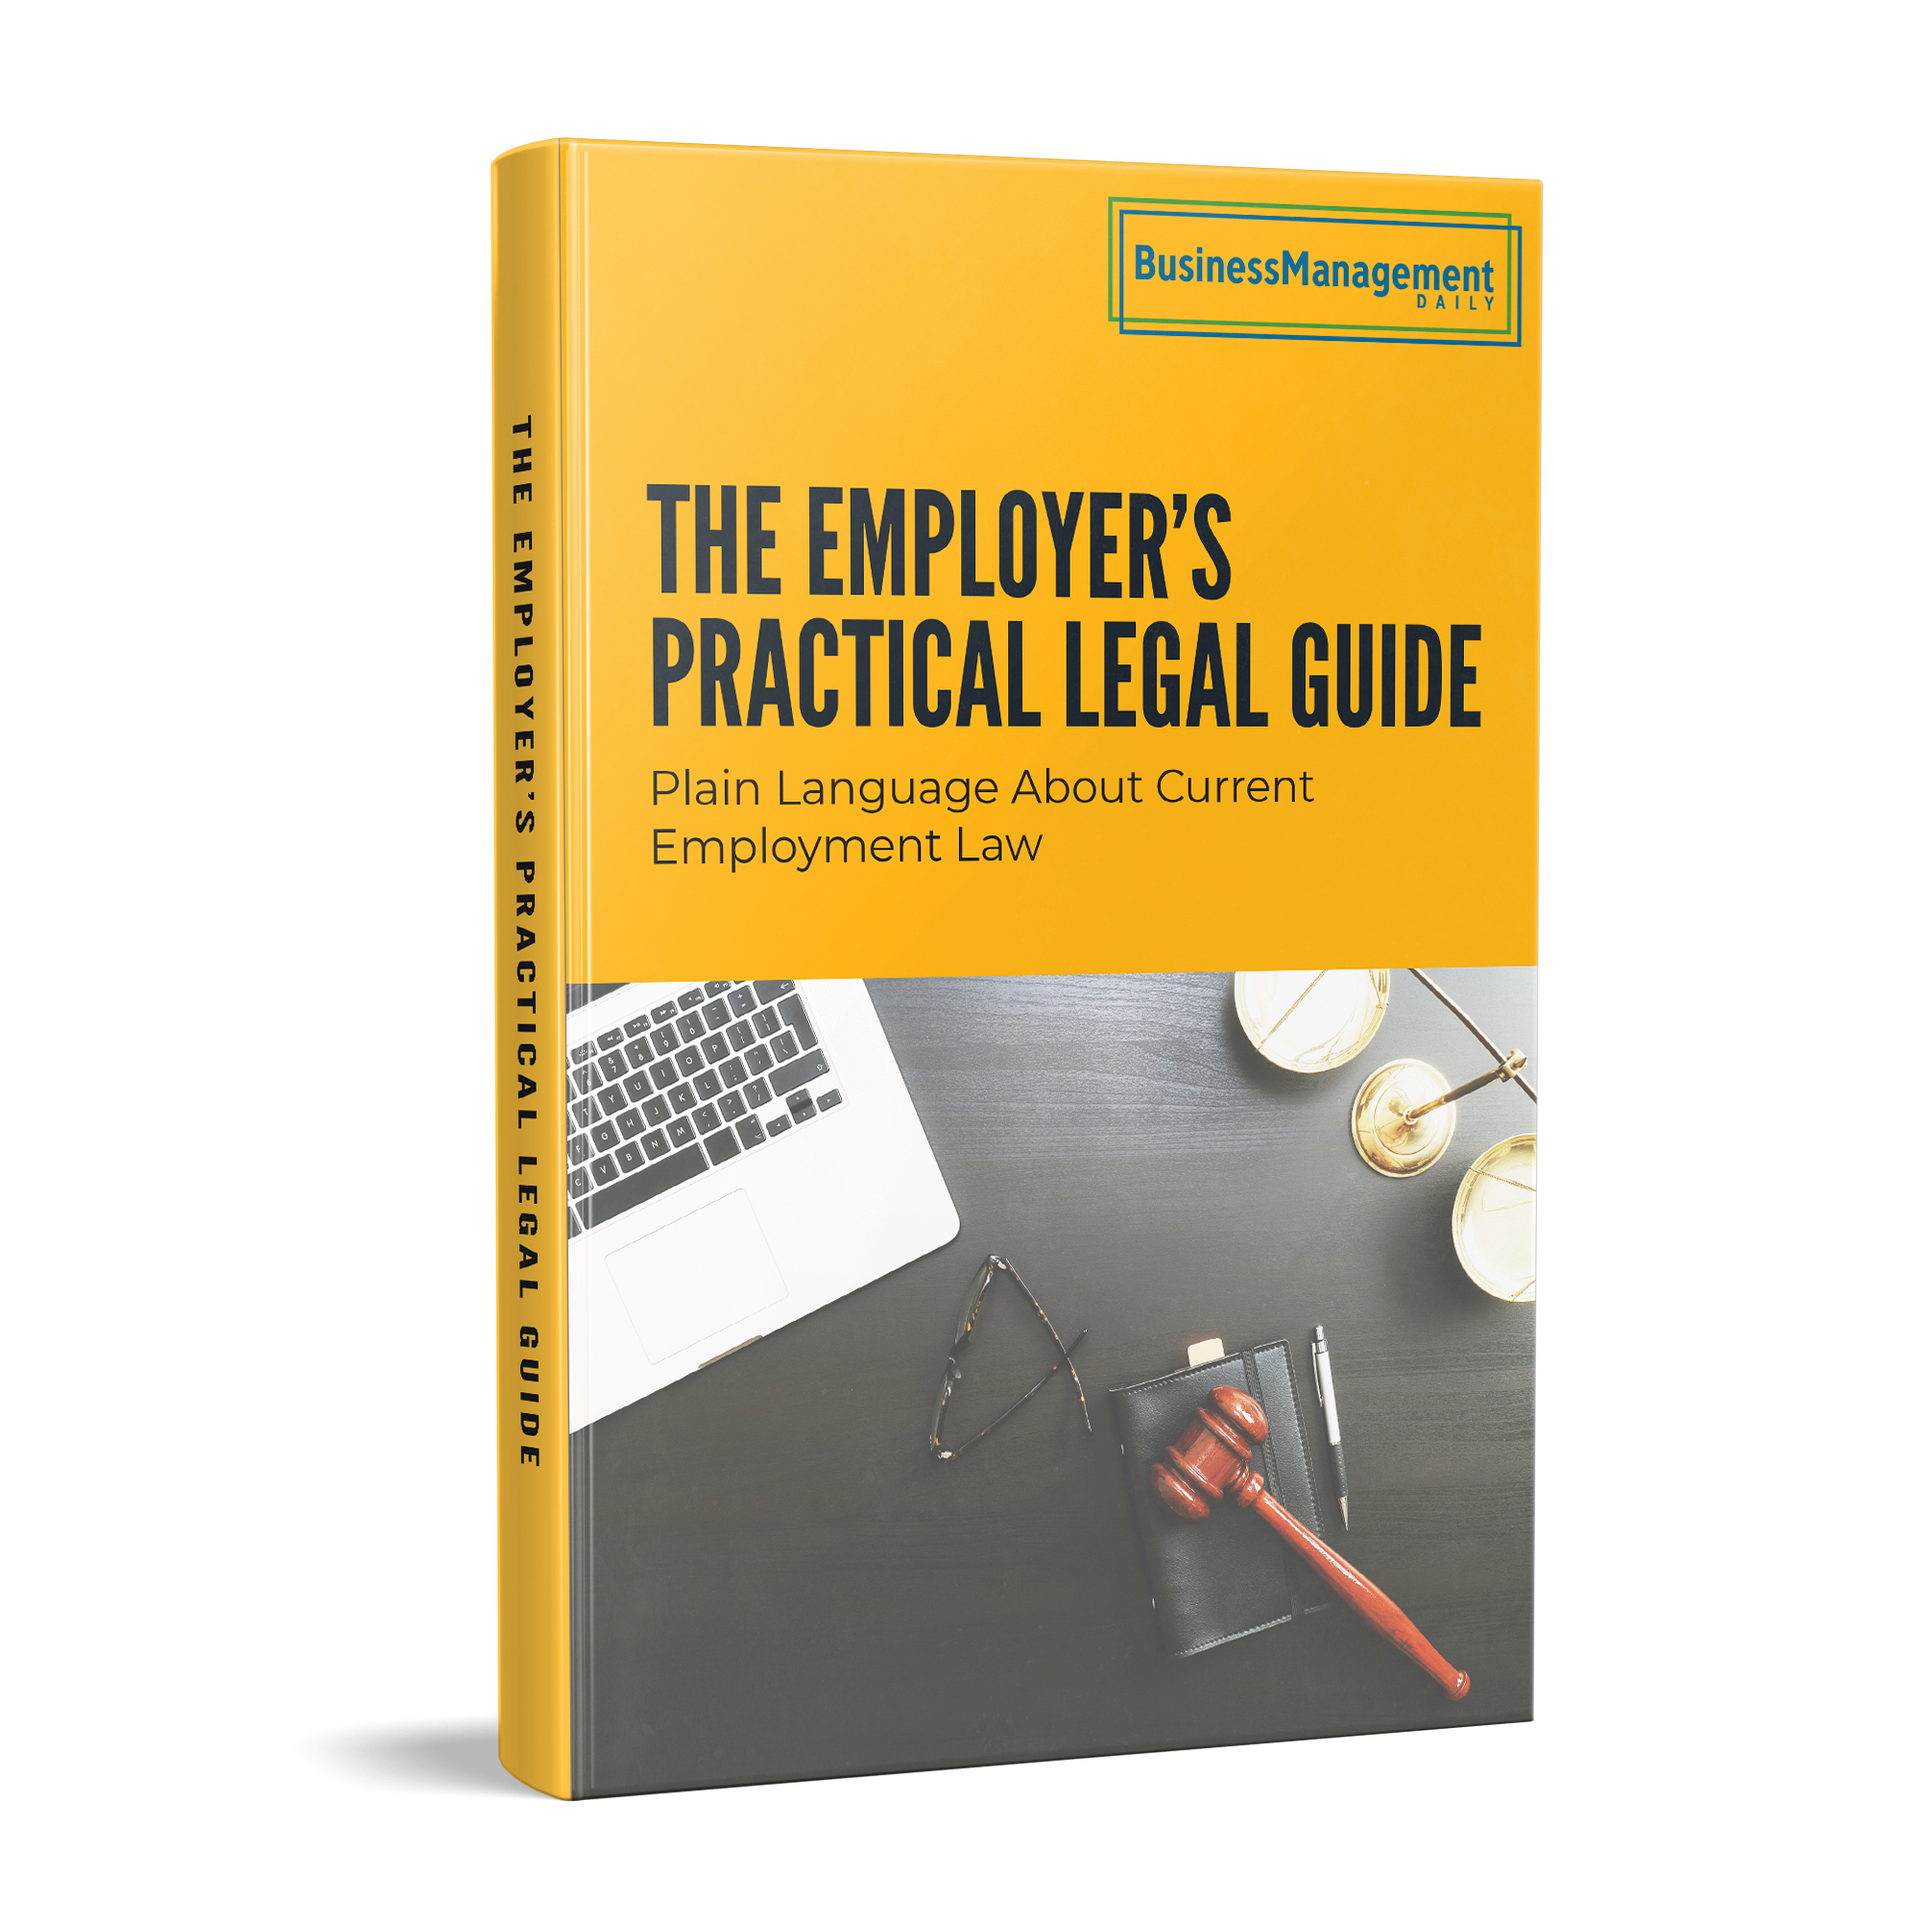 Employer's Practical Legal Guide book